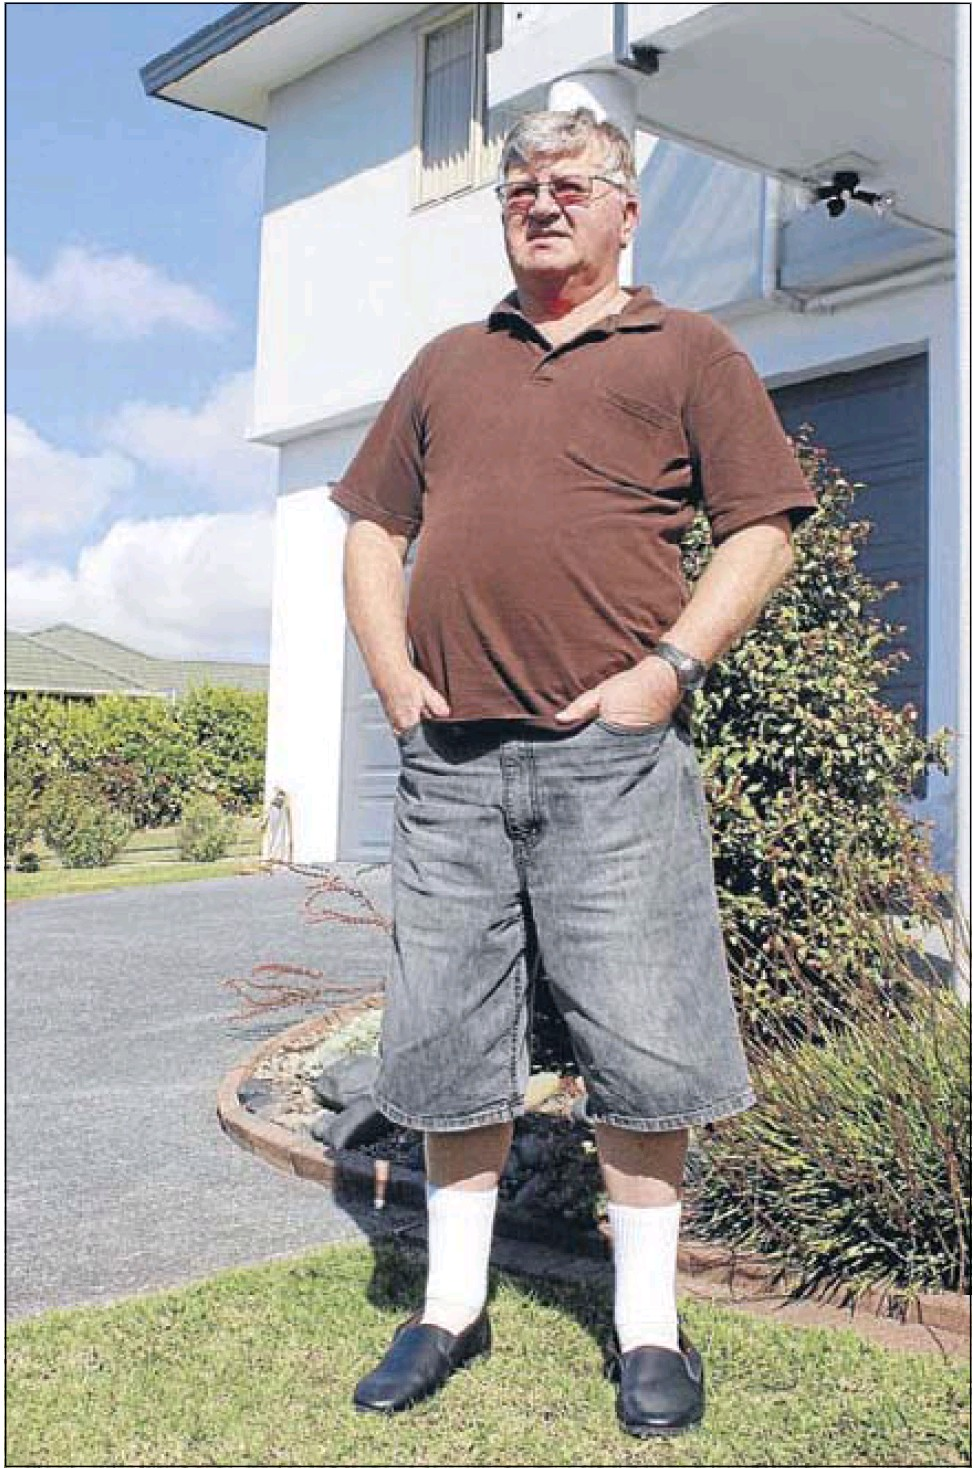 Sheer frustration:  Robin Molloy wants to downsize his house but leaky home battles prevent it.